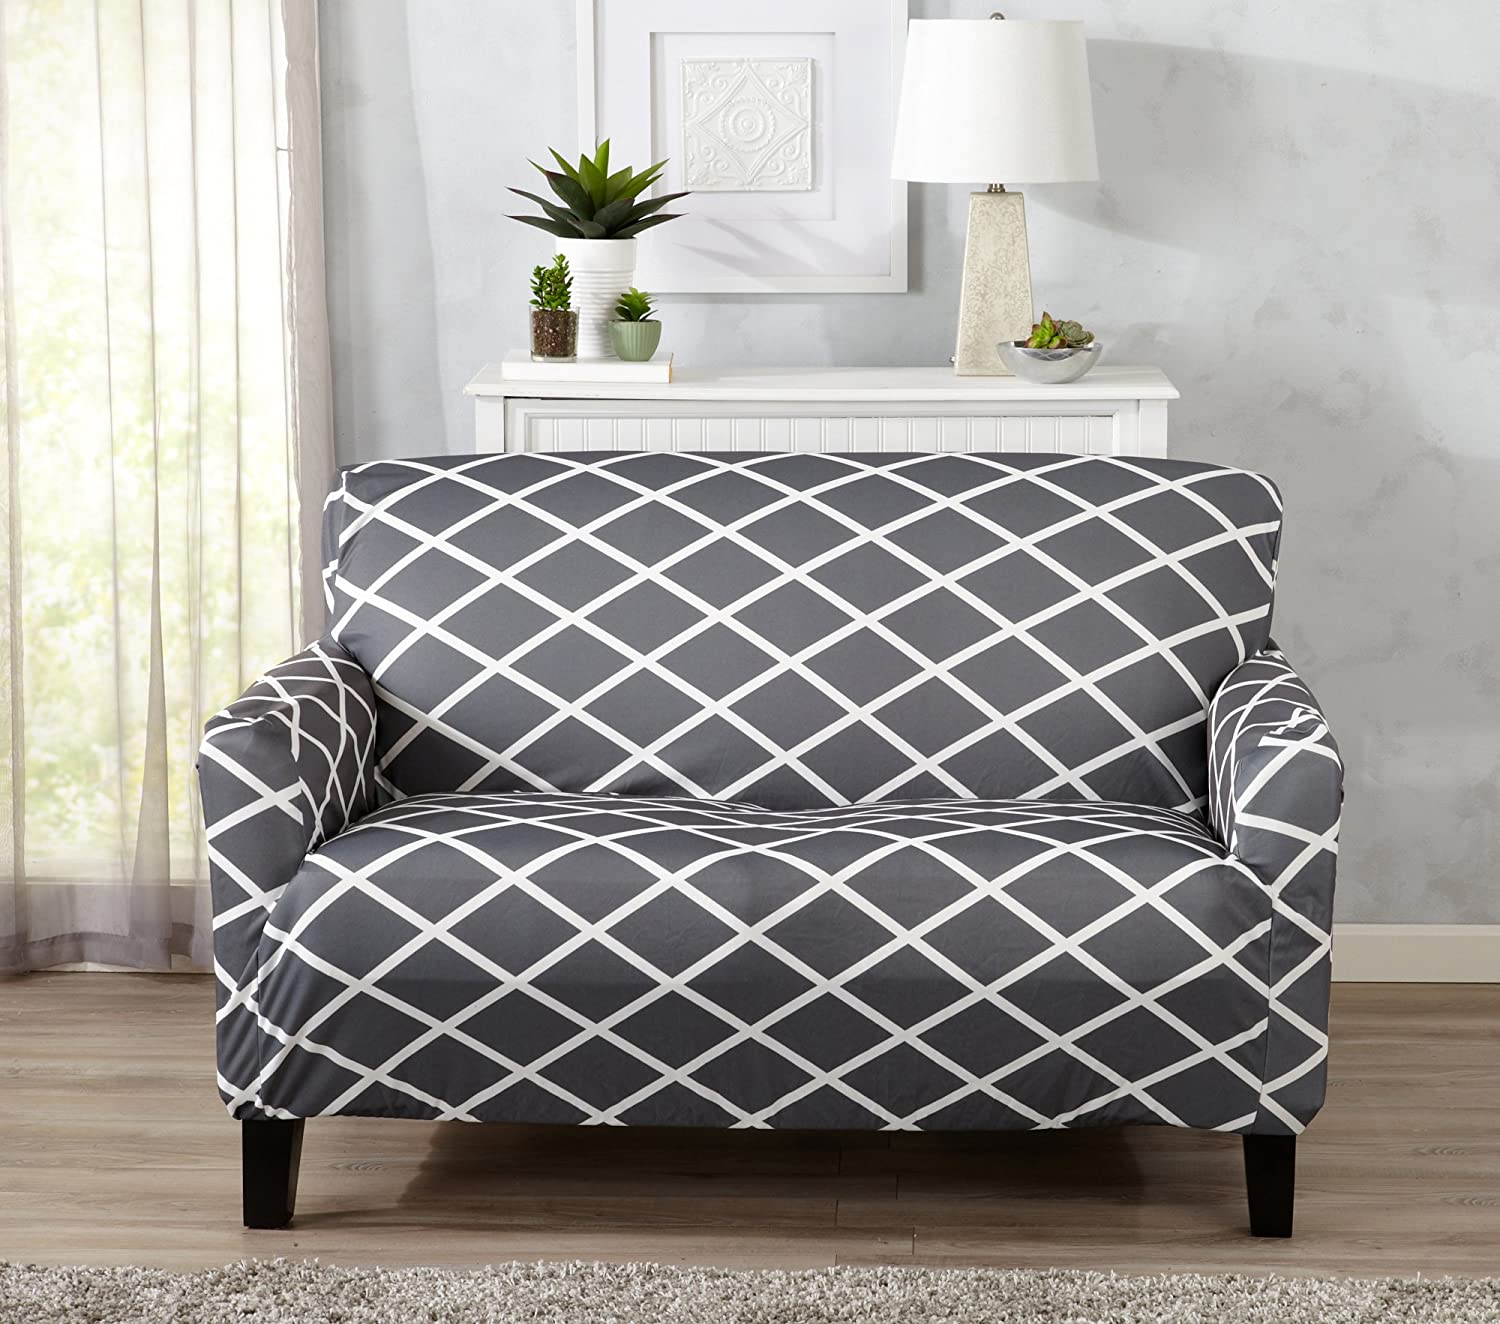 Strapless Stretch Printed Slipcover Chair Cover Stain and Spill Resistant Chair - Grey Tori Collection by Great Bay Home